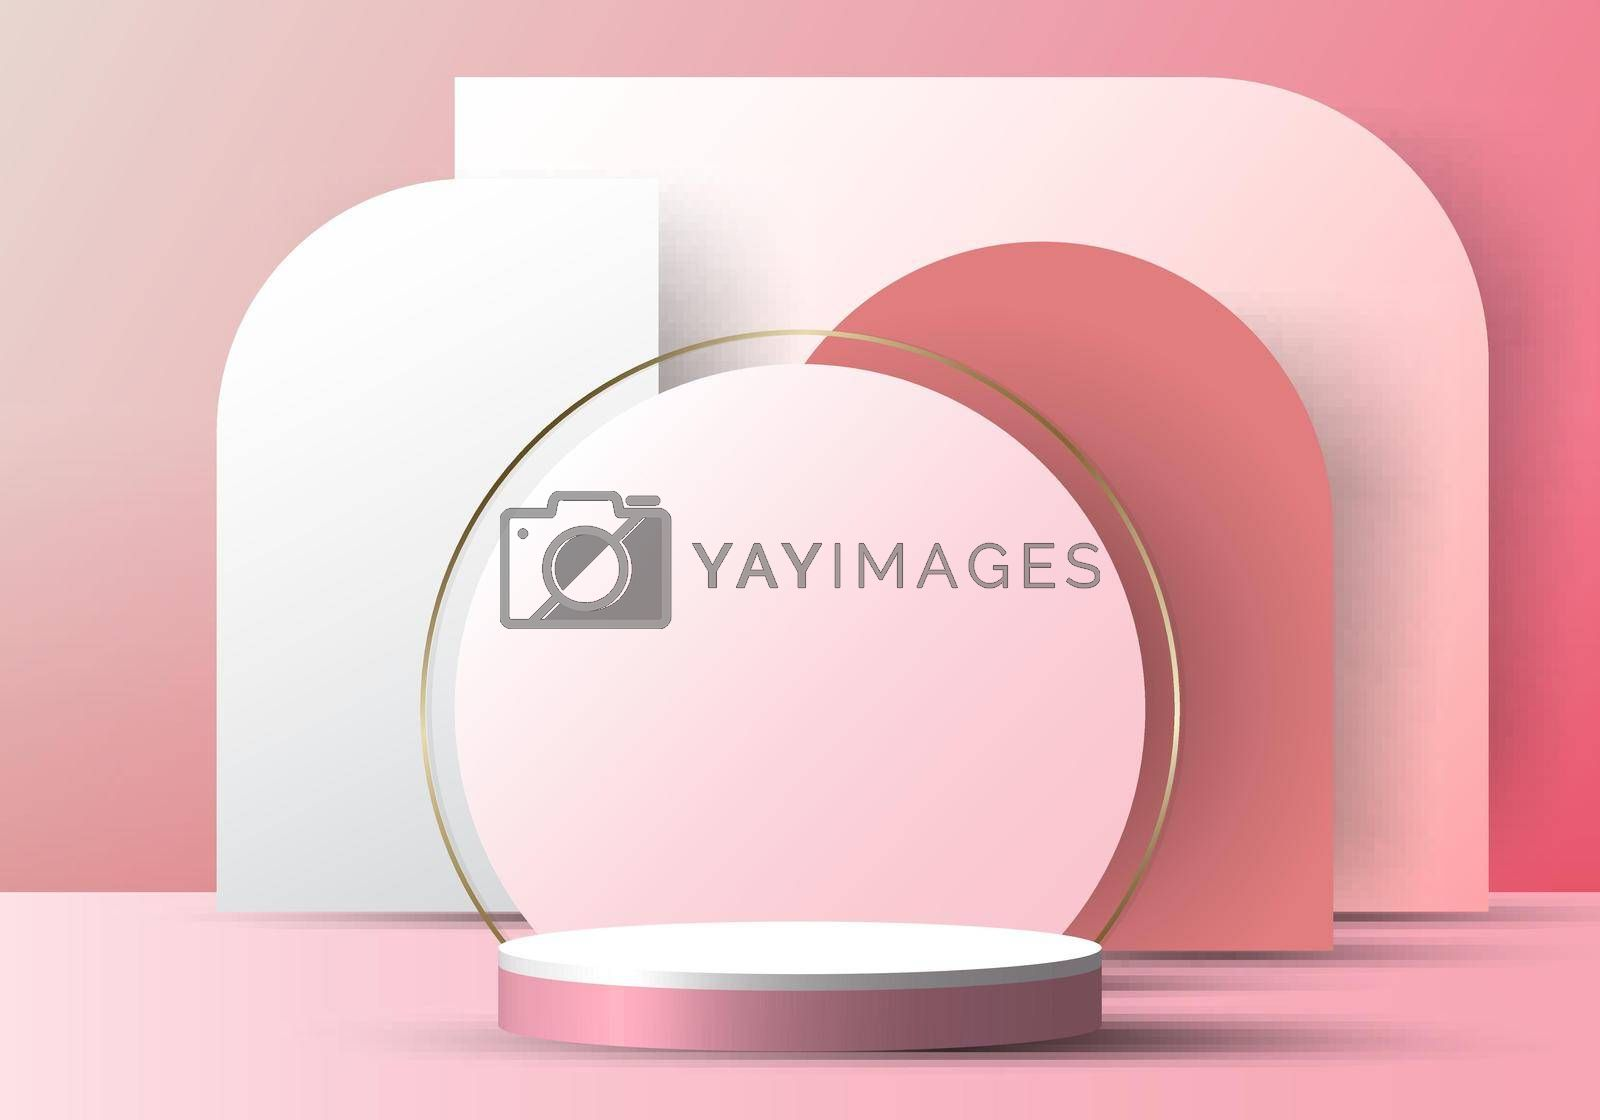 Royalty free image of 3D realistic elegant white cylinder on circle rounded backdrop on pink background by phochi